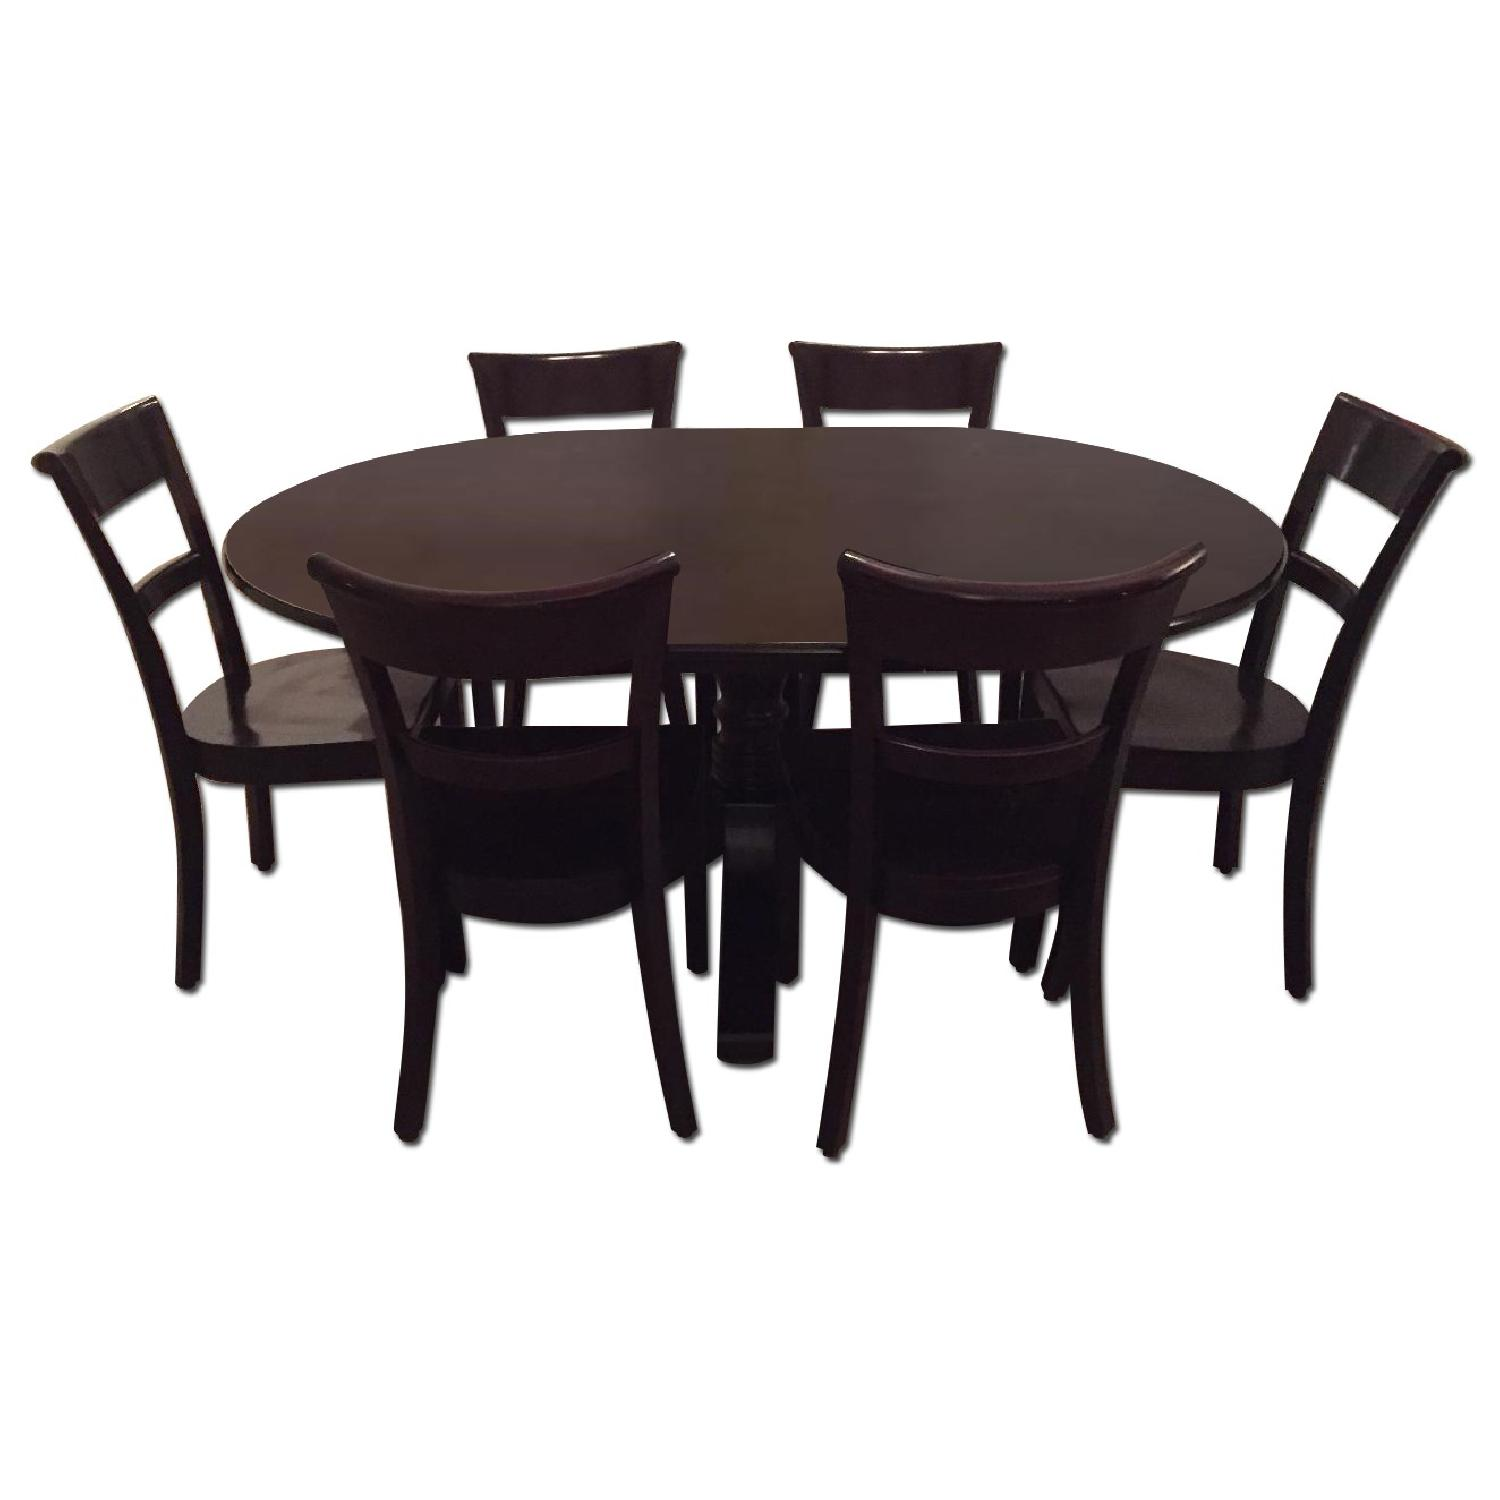 Crate & Barrel Dining Room Table w/ 6 Chairs - image-0